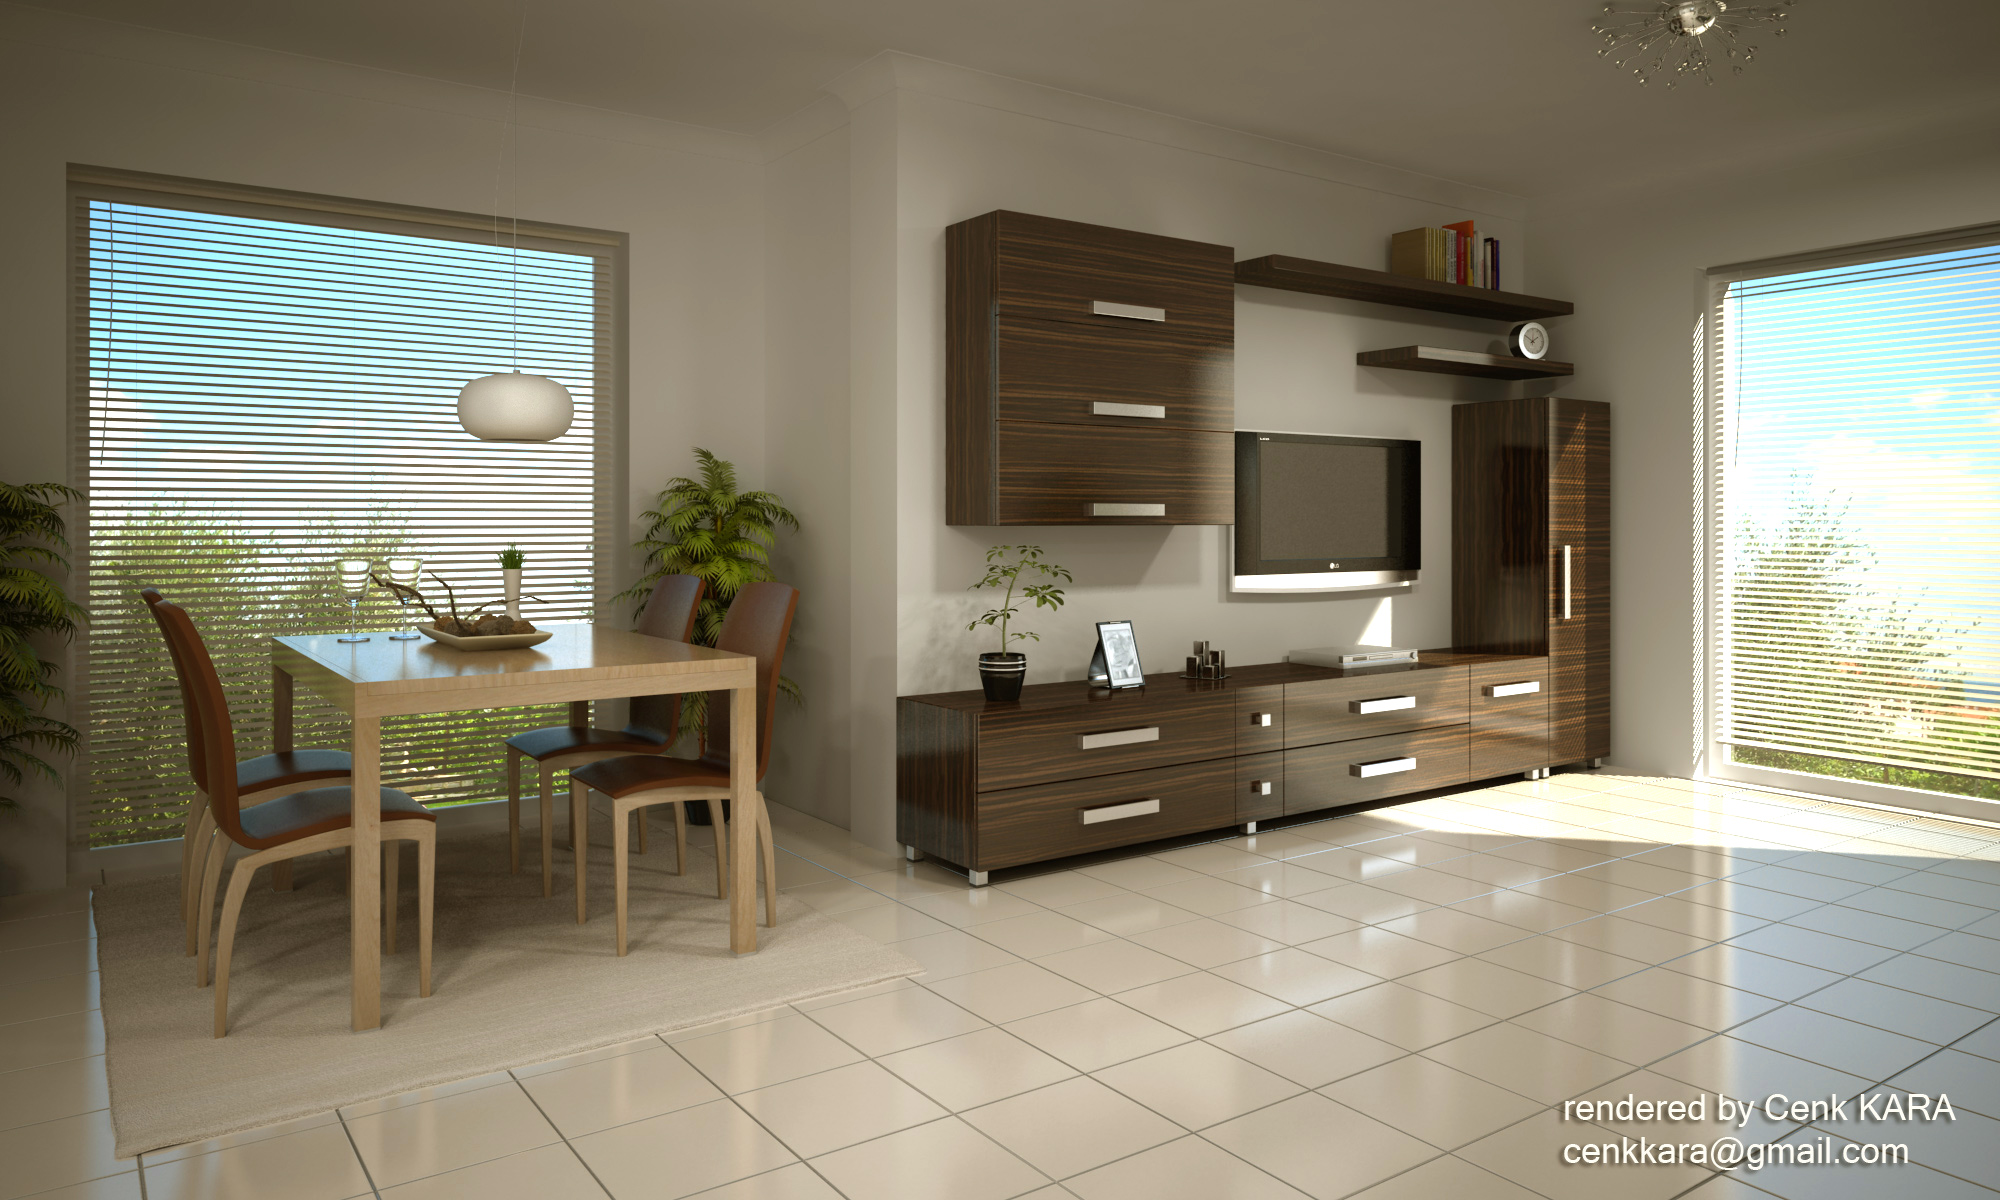 Kitchen & Living Room Rendering by Cenk Kara at Coroflot.com